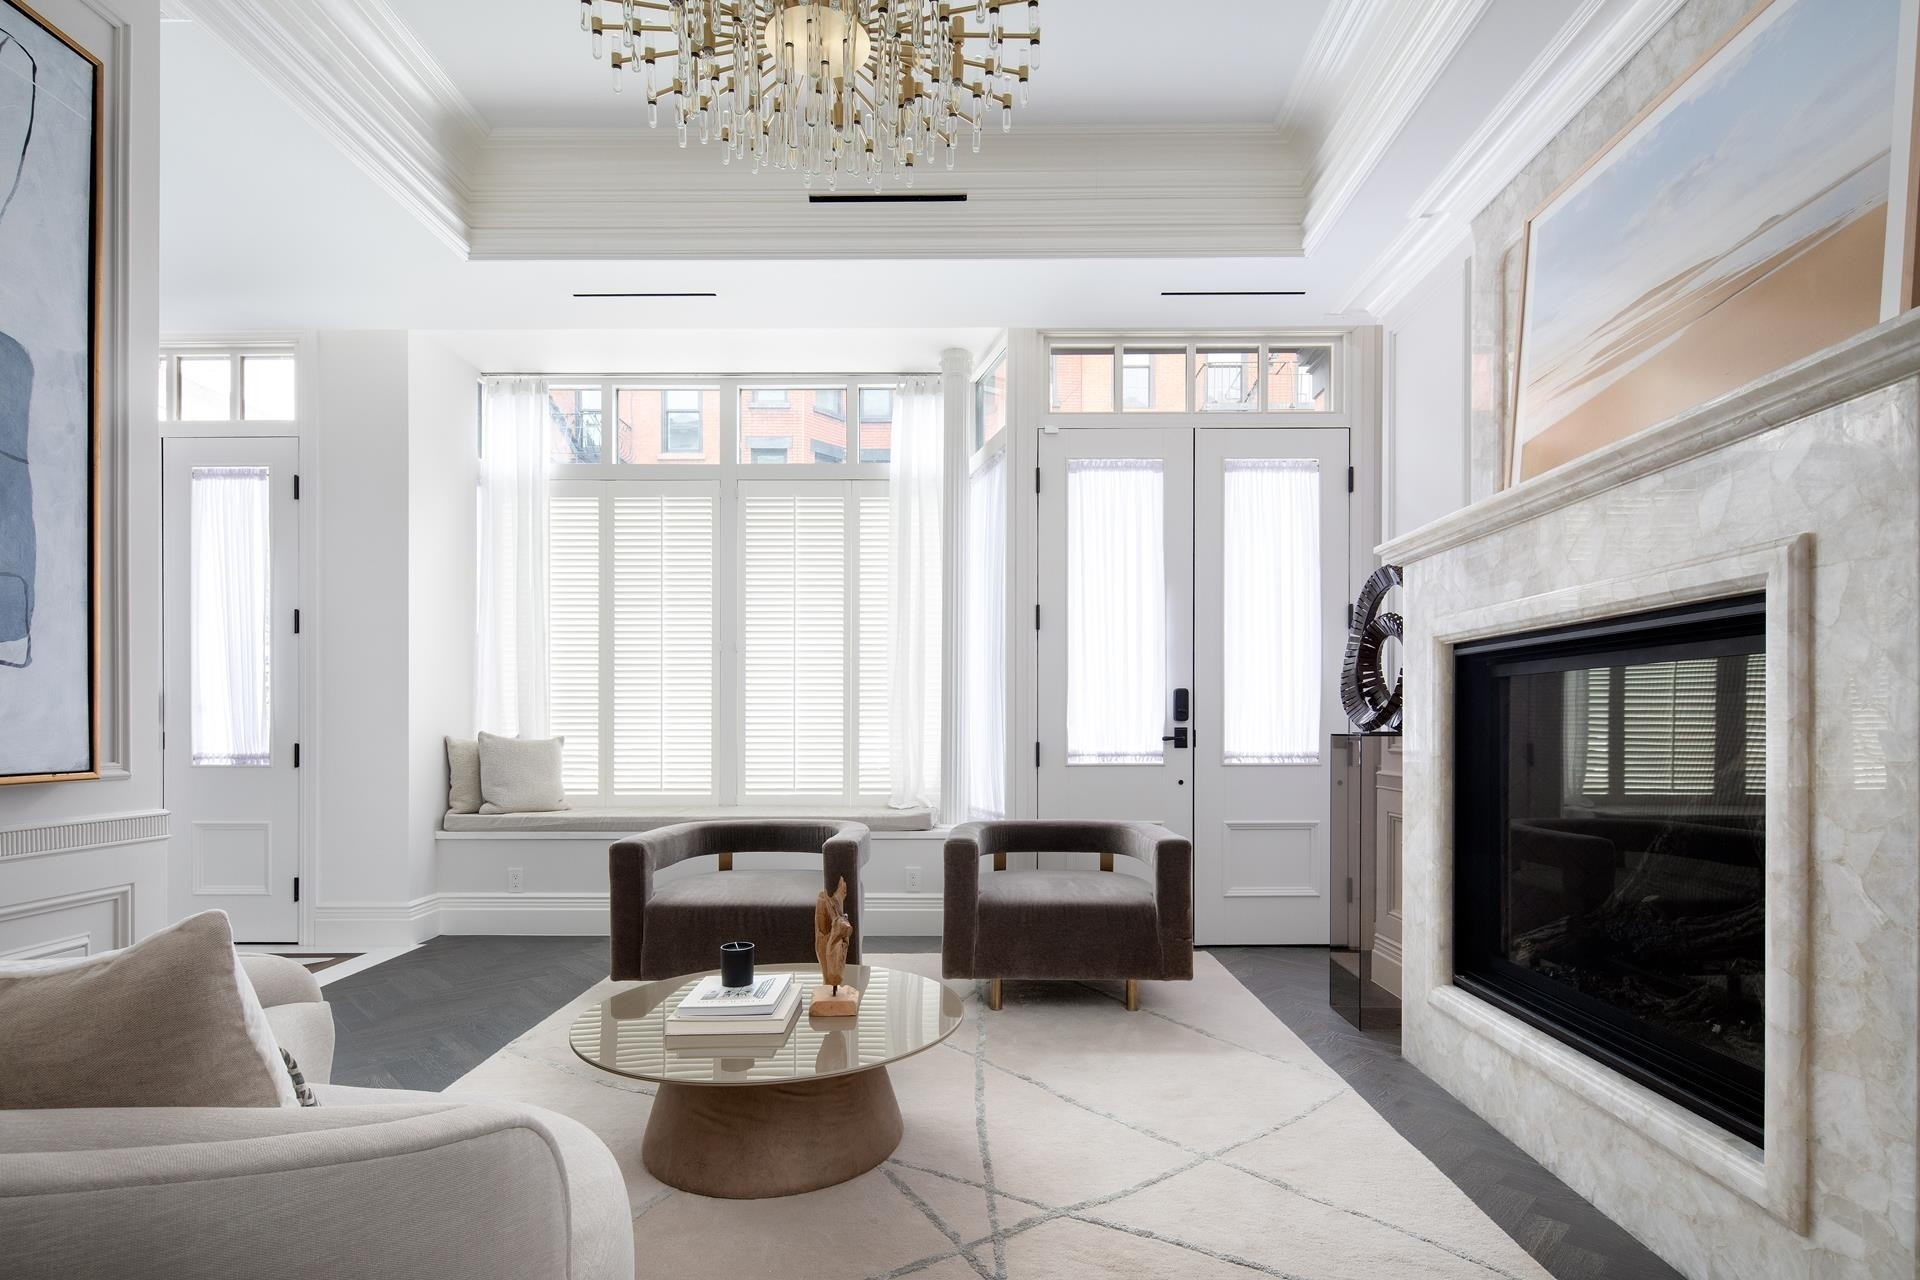 3. Single Family Townhouse for Sale at 50 HICKS ST , TH Brooklyn Heights, Brooklyn, NY 11201